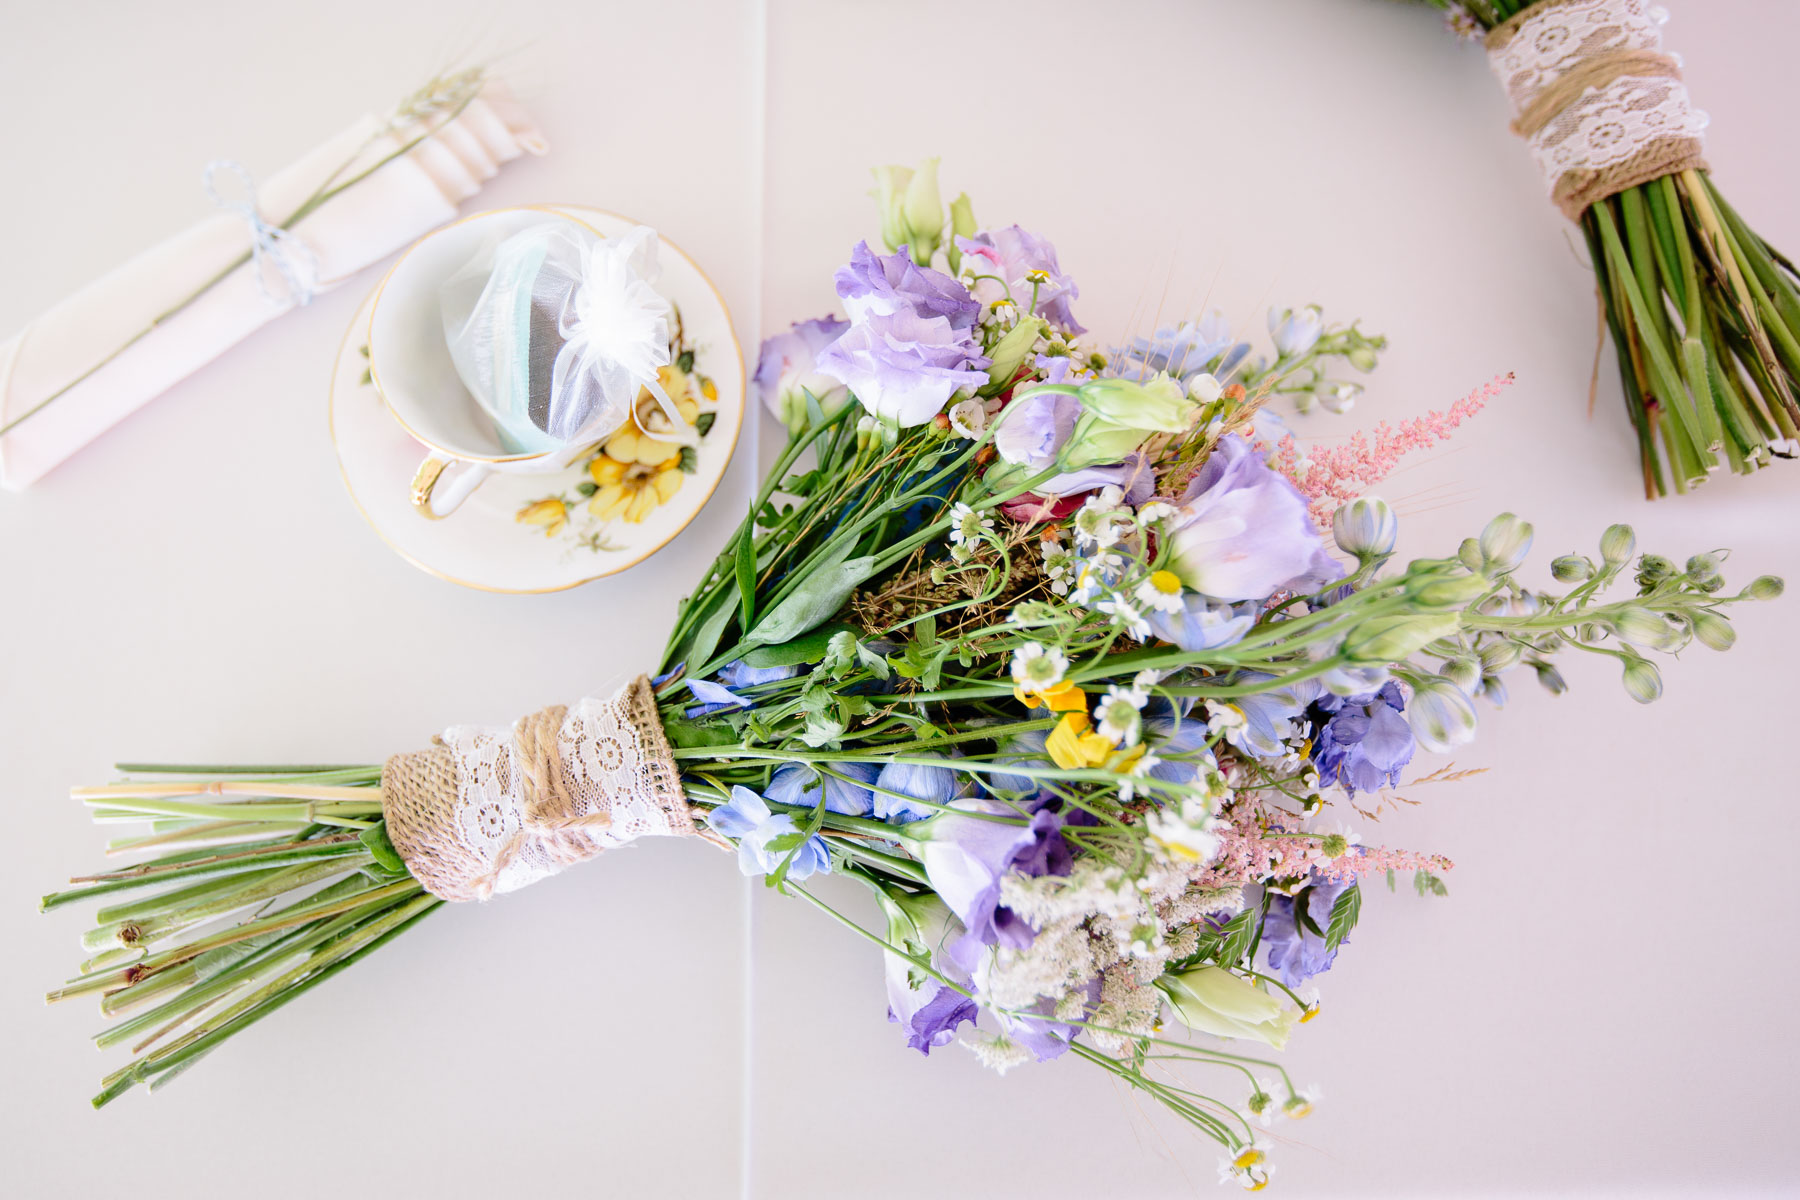 Beautiful bouquet of violet flowers and some table decorations at a rustic farm wedding.